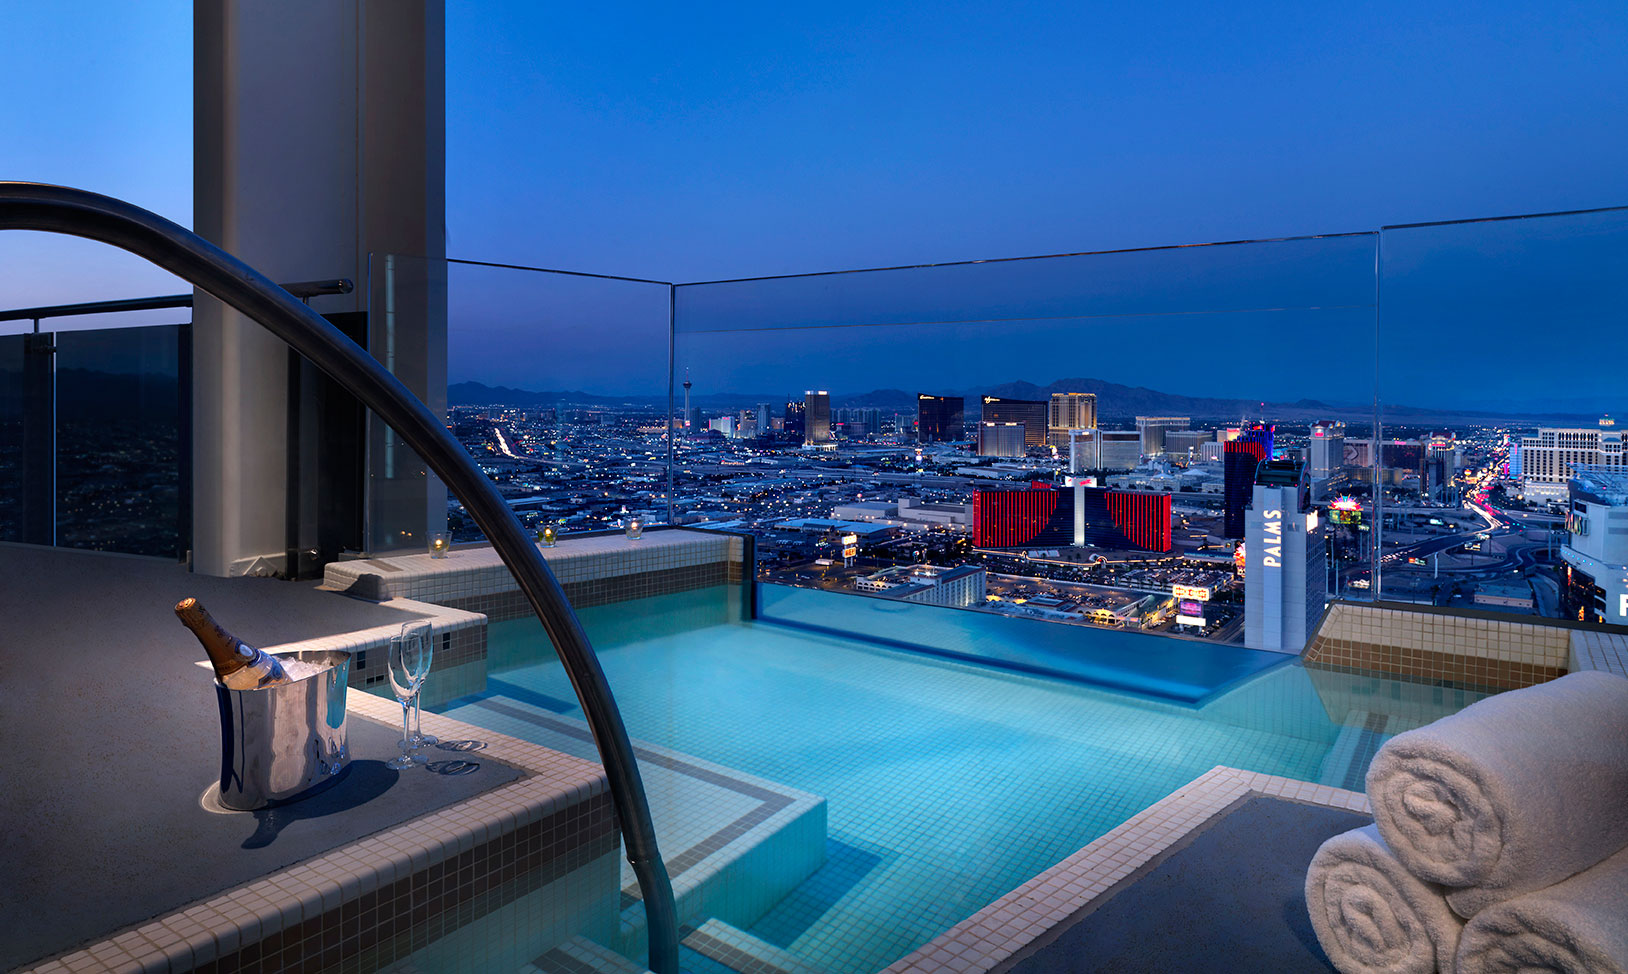 The Best Vegas Rooms With A View